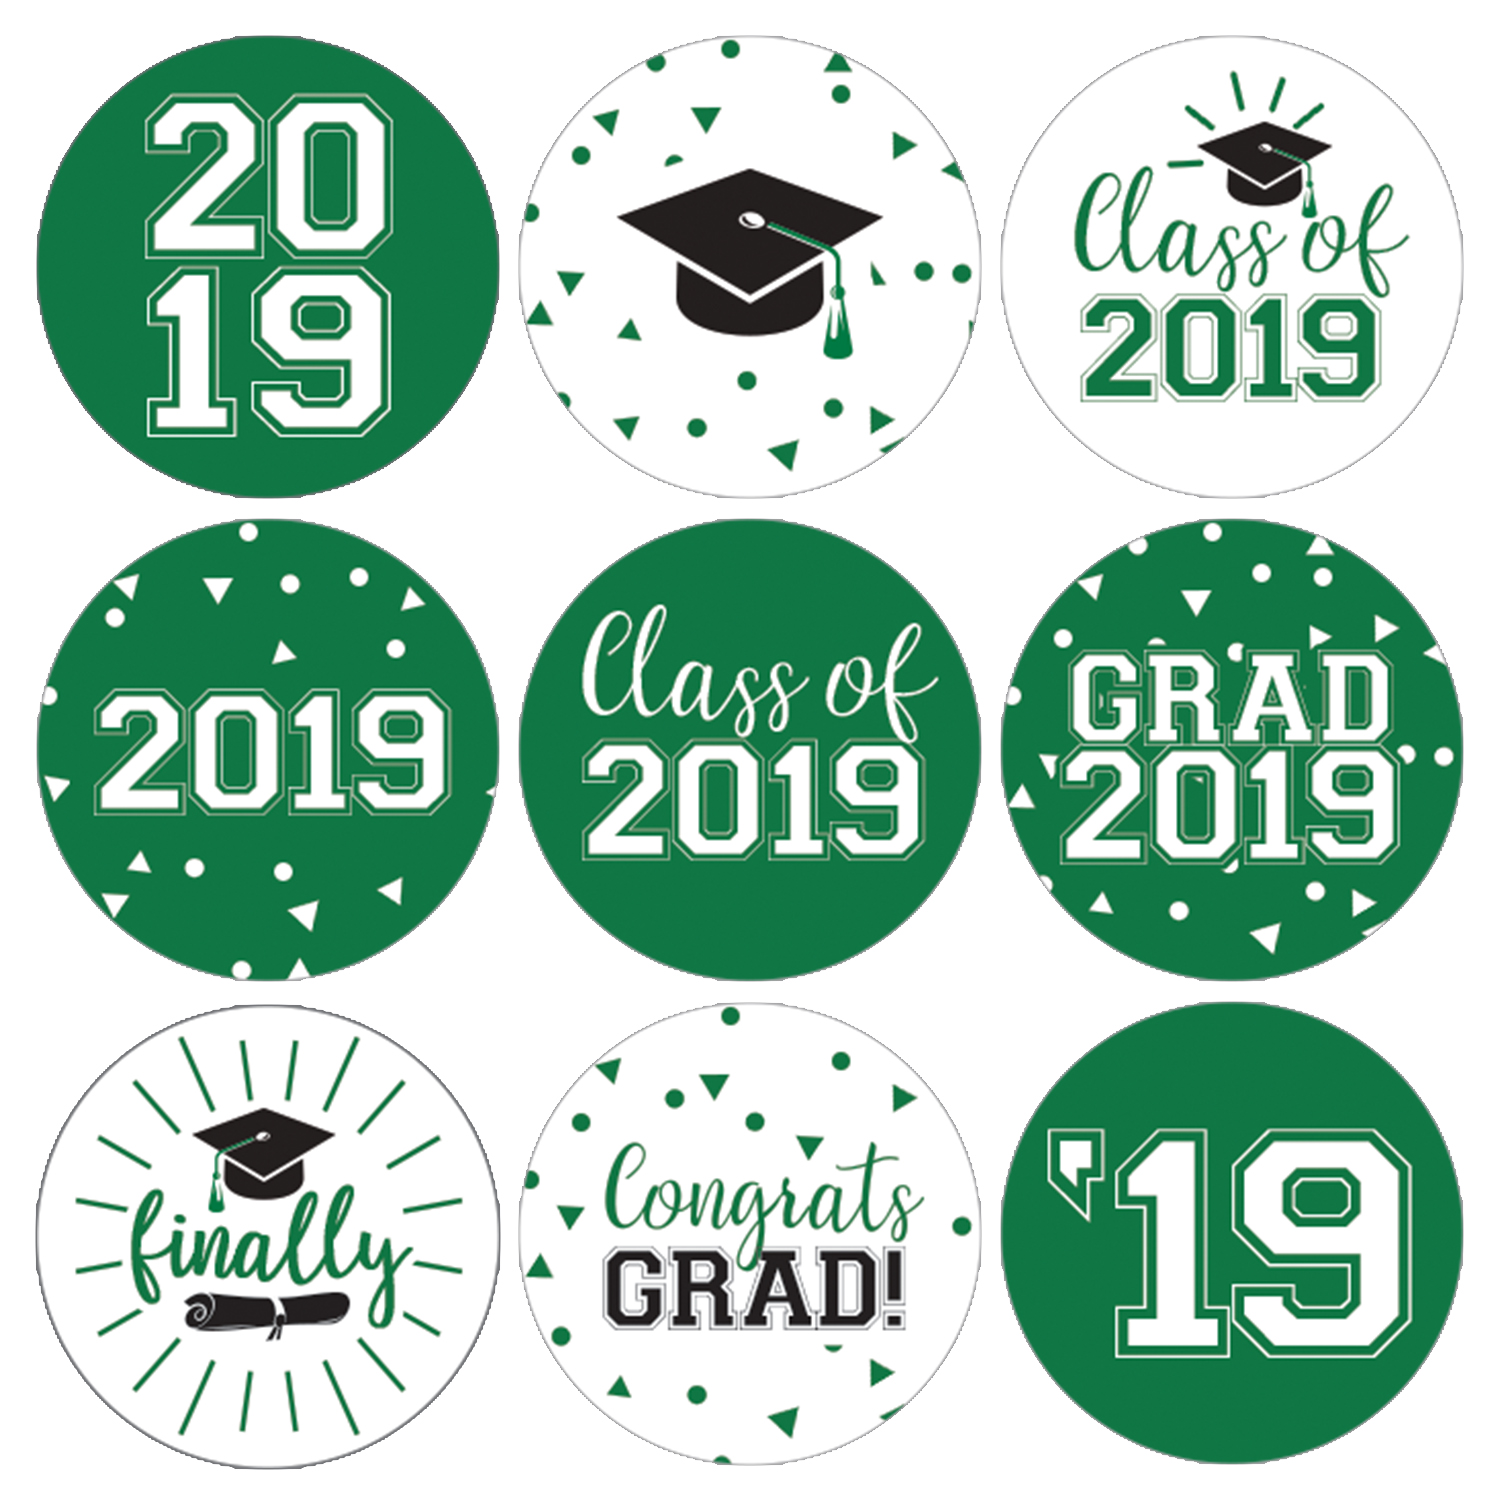 Green Graduation Party Stickers   216ct   Class of 2019 Favor Labels